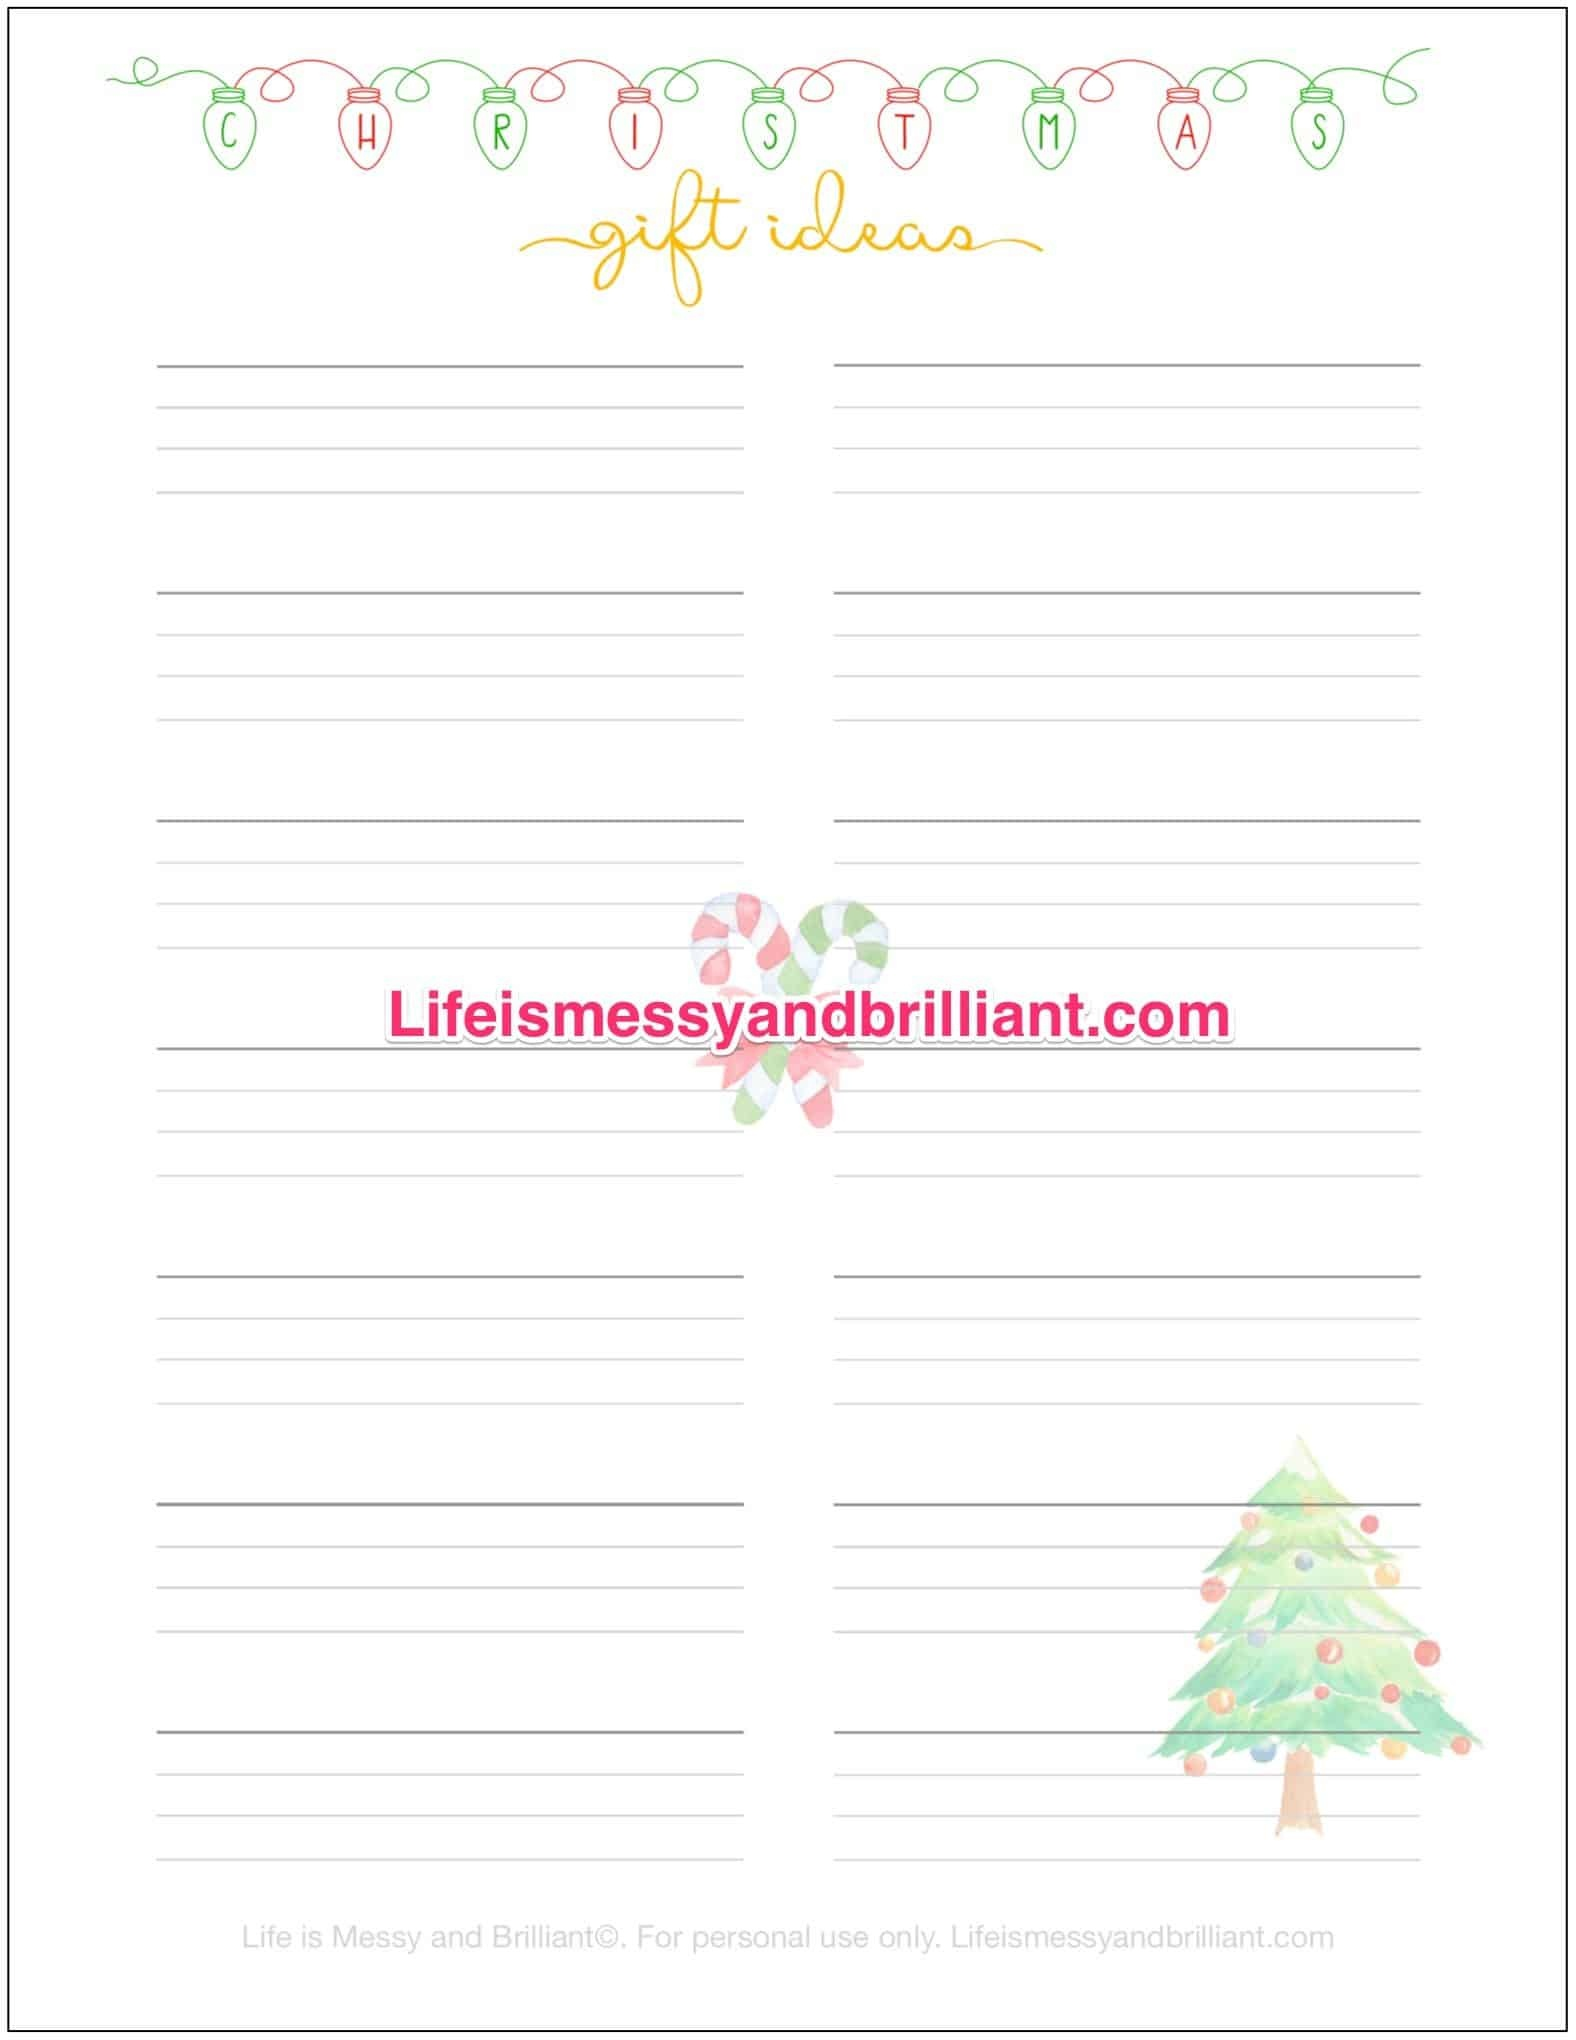 Free Bullet Journal Printables - Free Bullet Journal Printables 2019